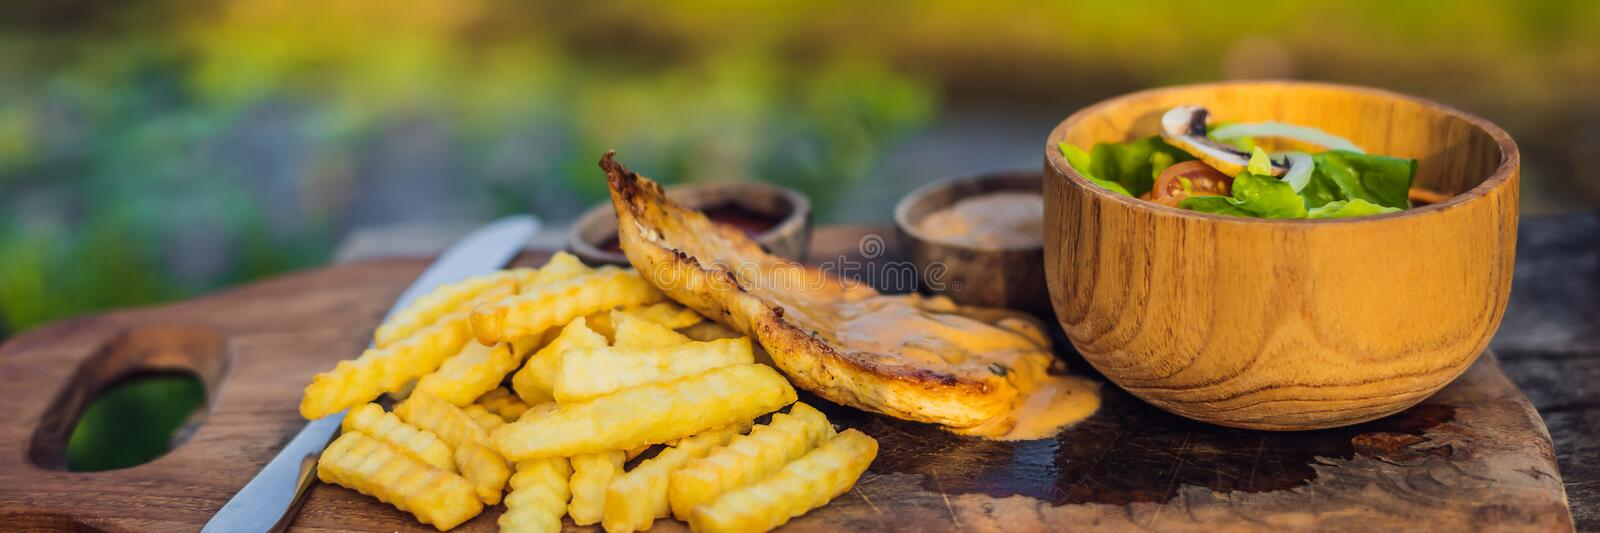 French fries, green salad with champignons and chicken breast. Lifestyle food BANNER, LONG FORMAT royalty free stock photo